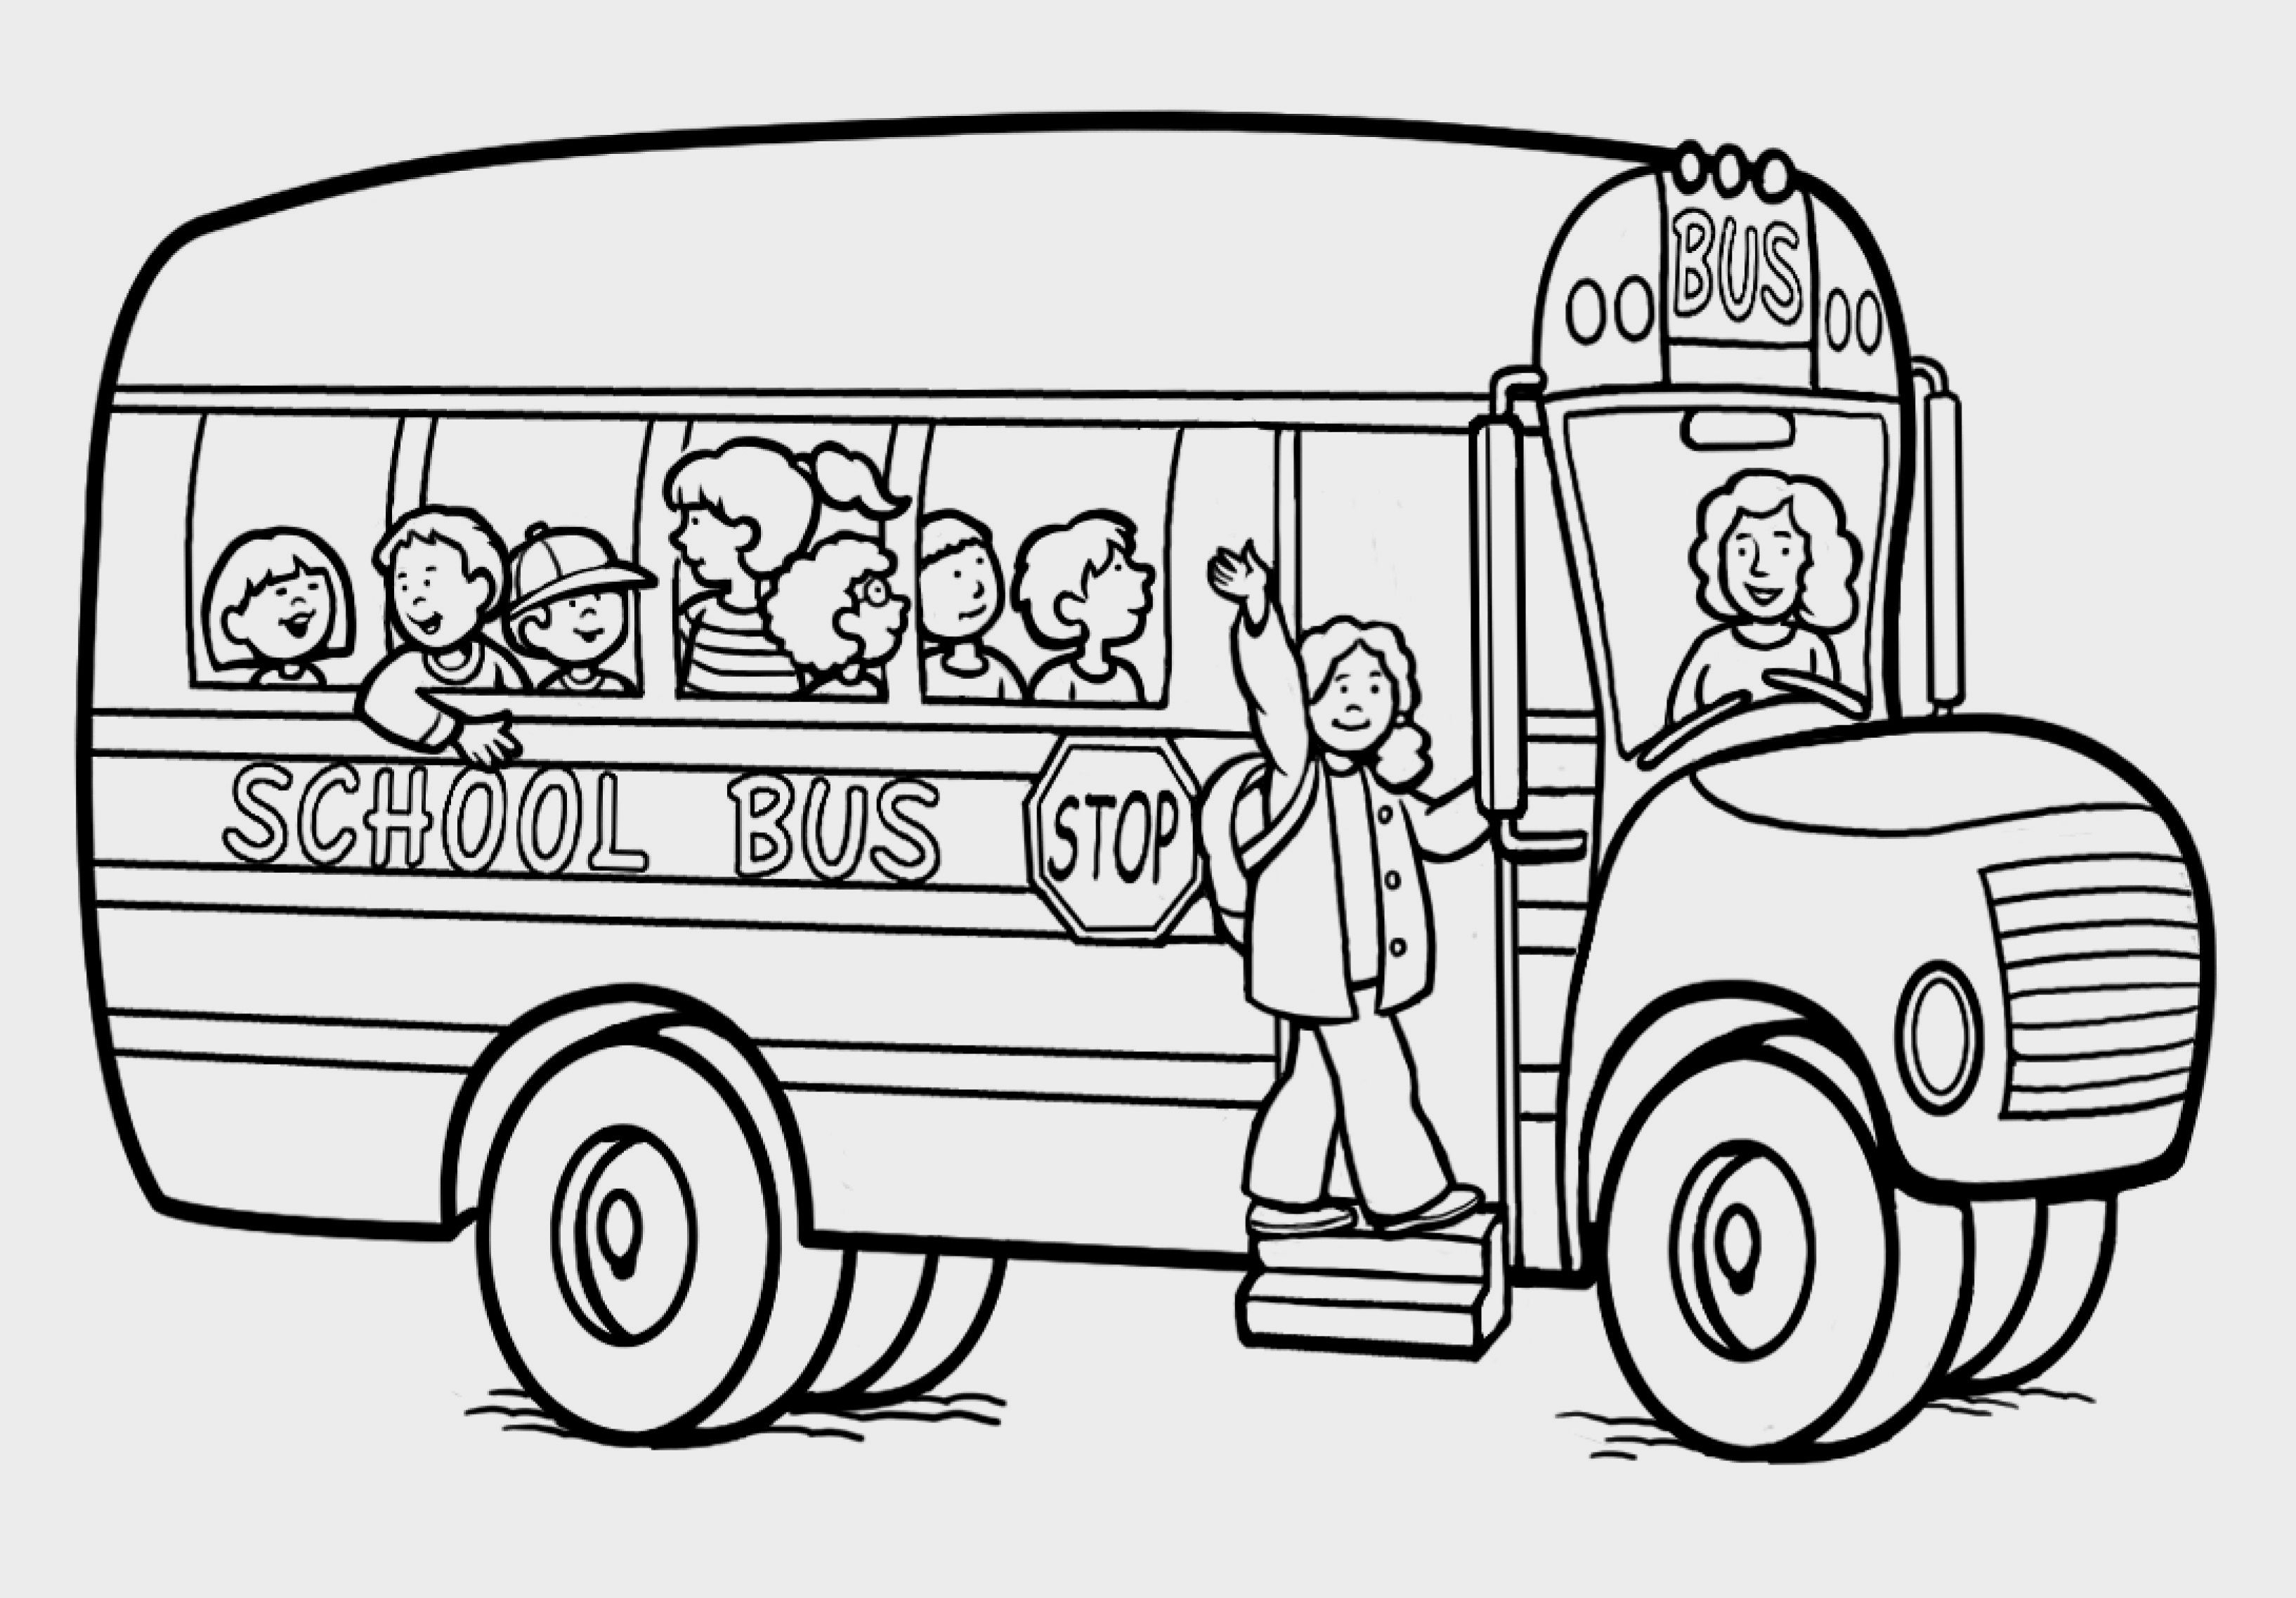 school bus coloring pages printable Collection-School Bus Color Page 20-m